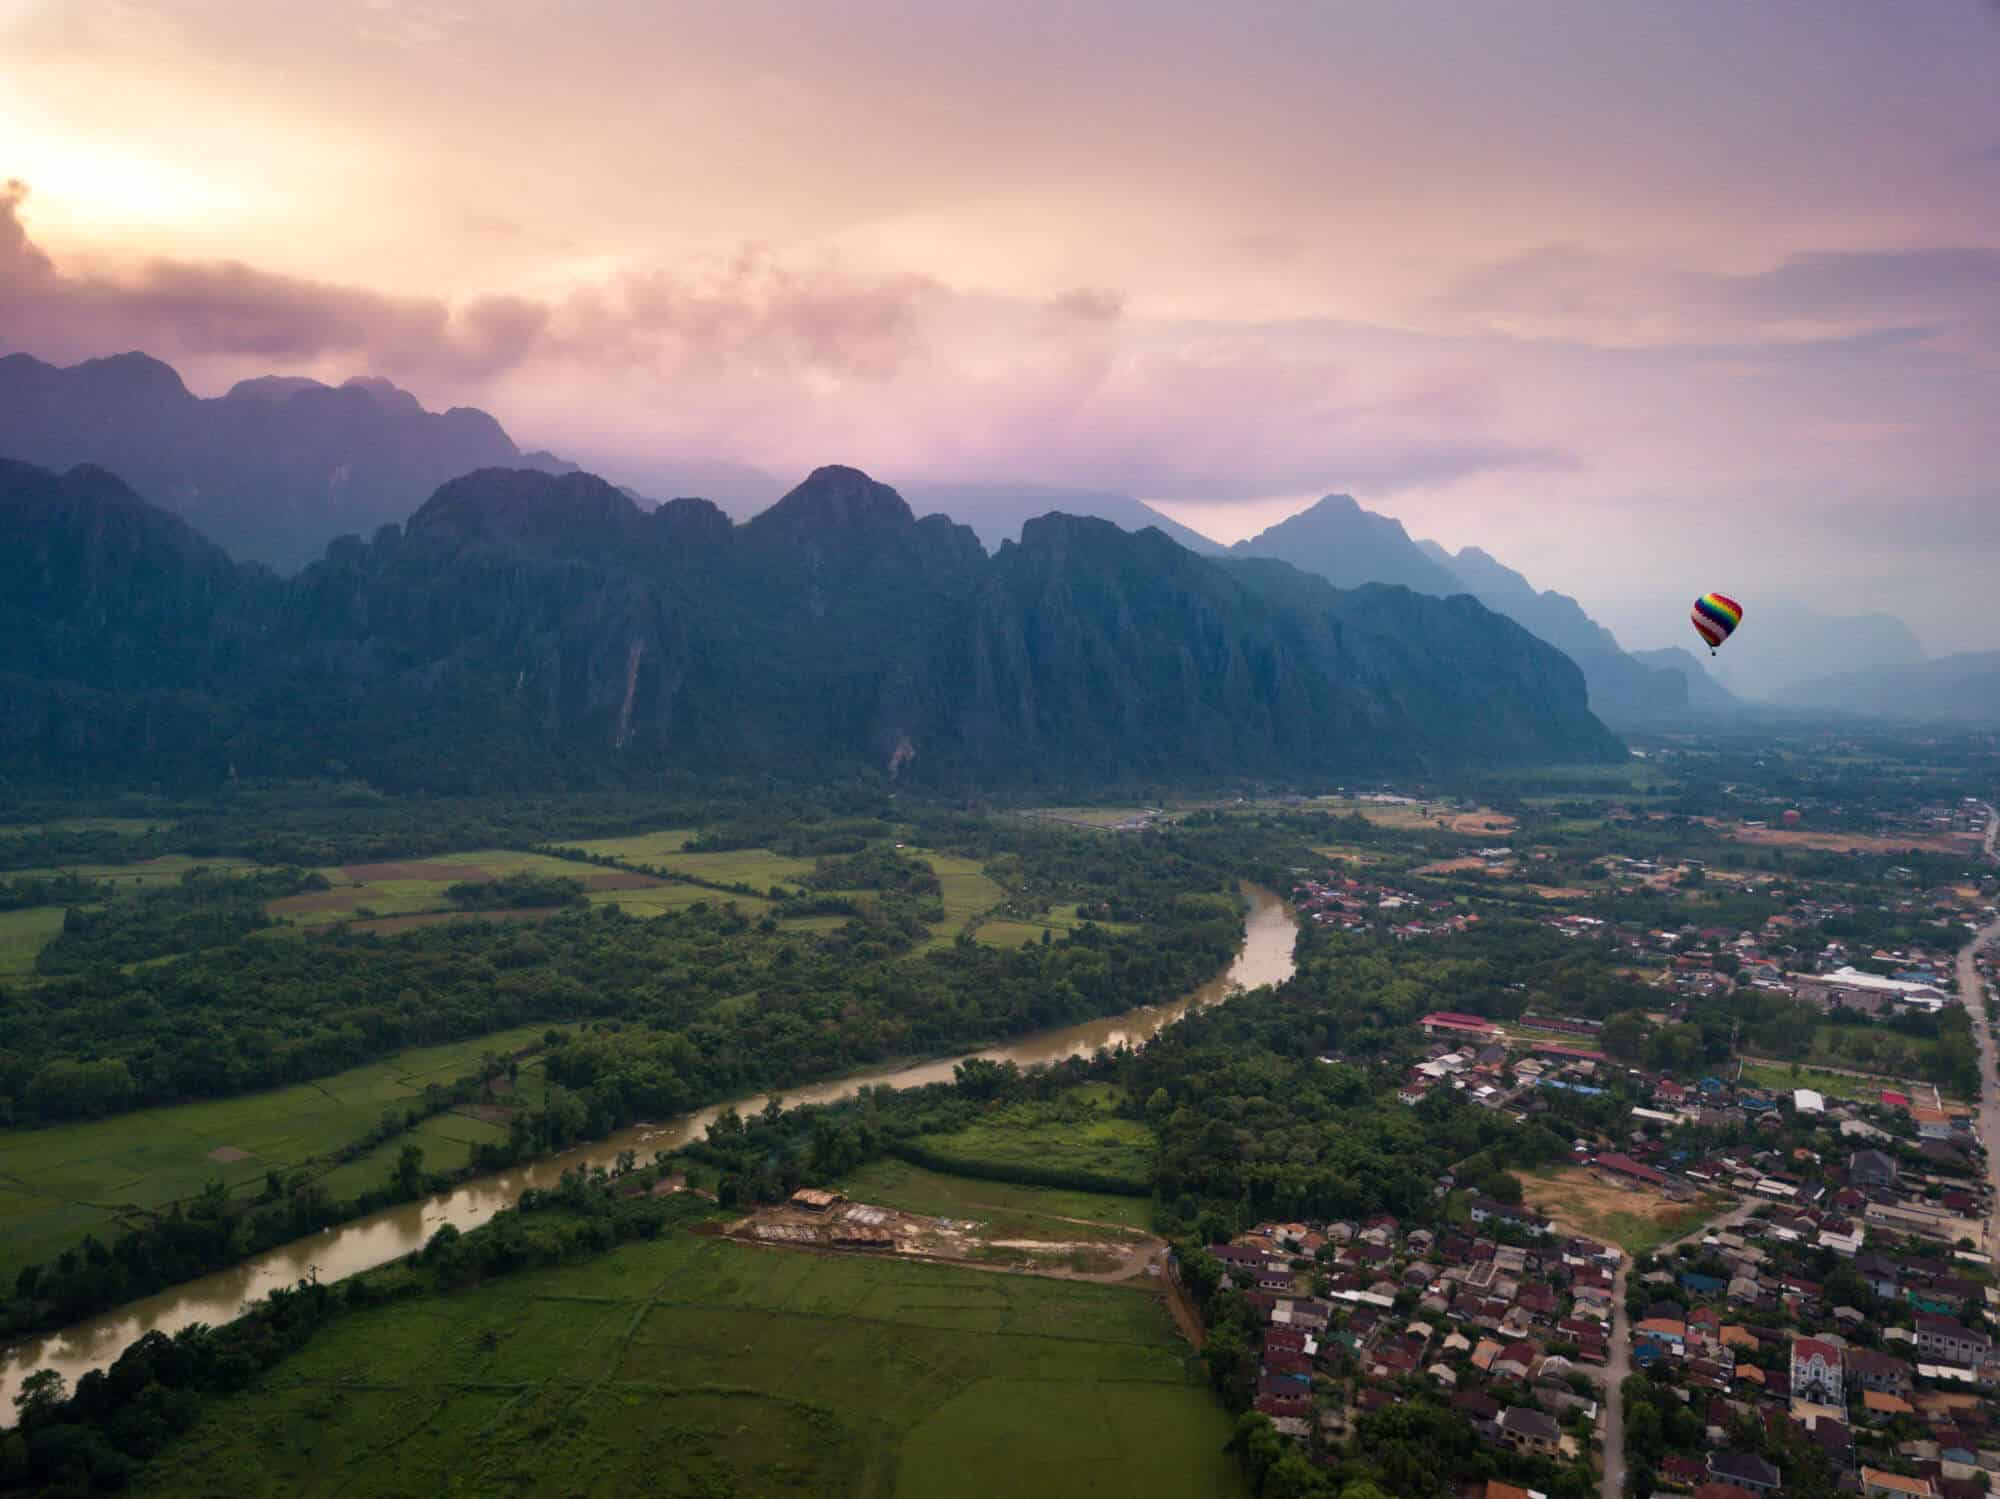 A hot air balloon ride through the mountains of Vang Vieng during sunset